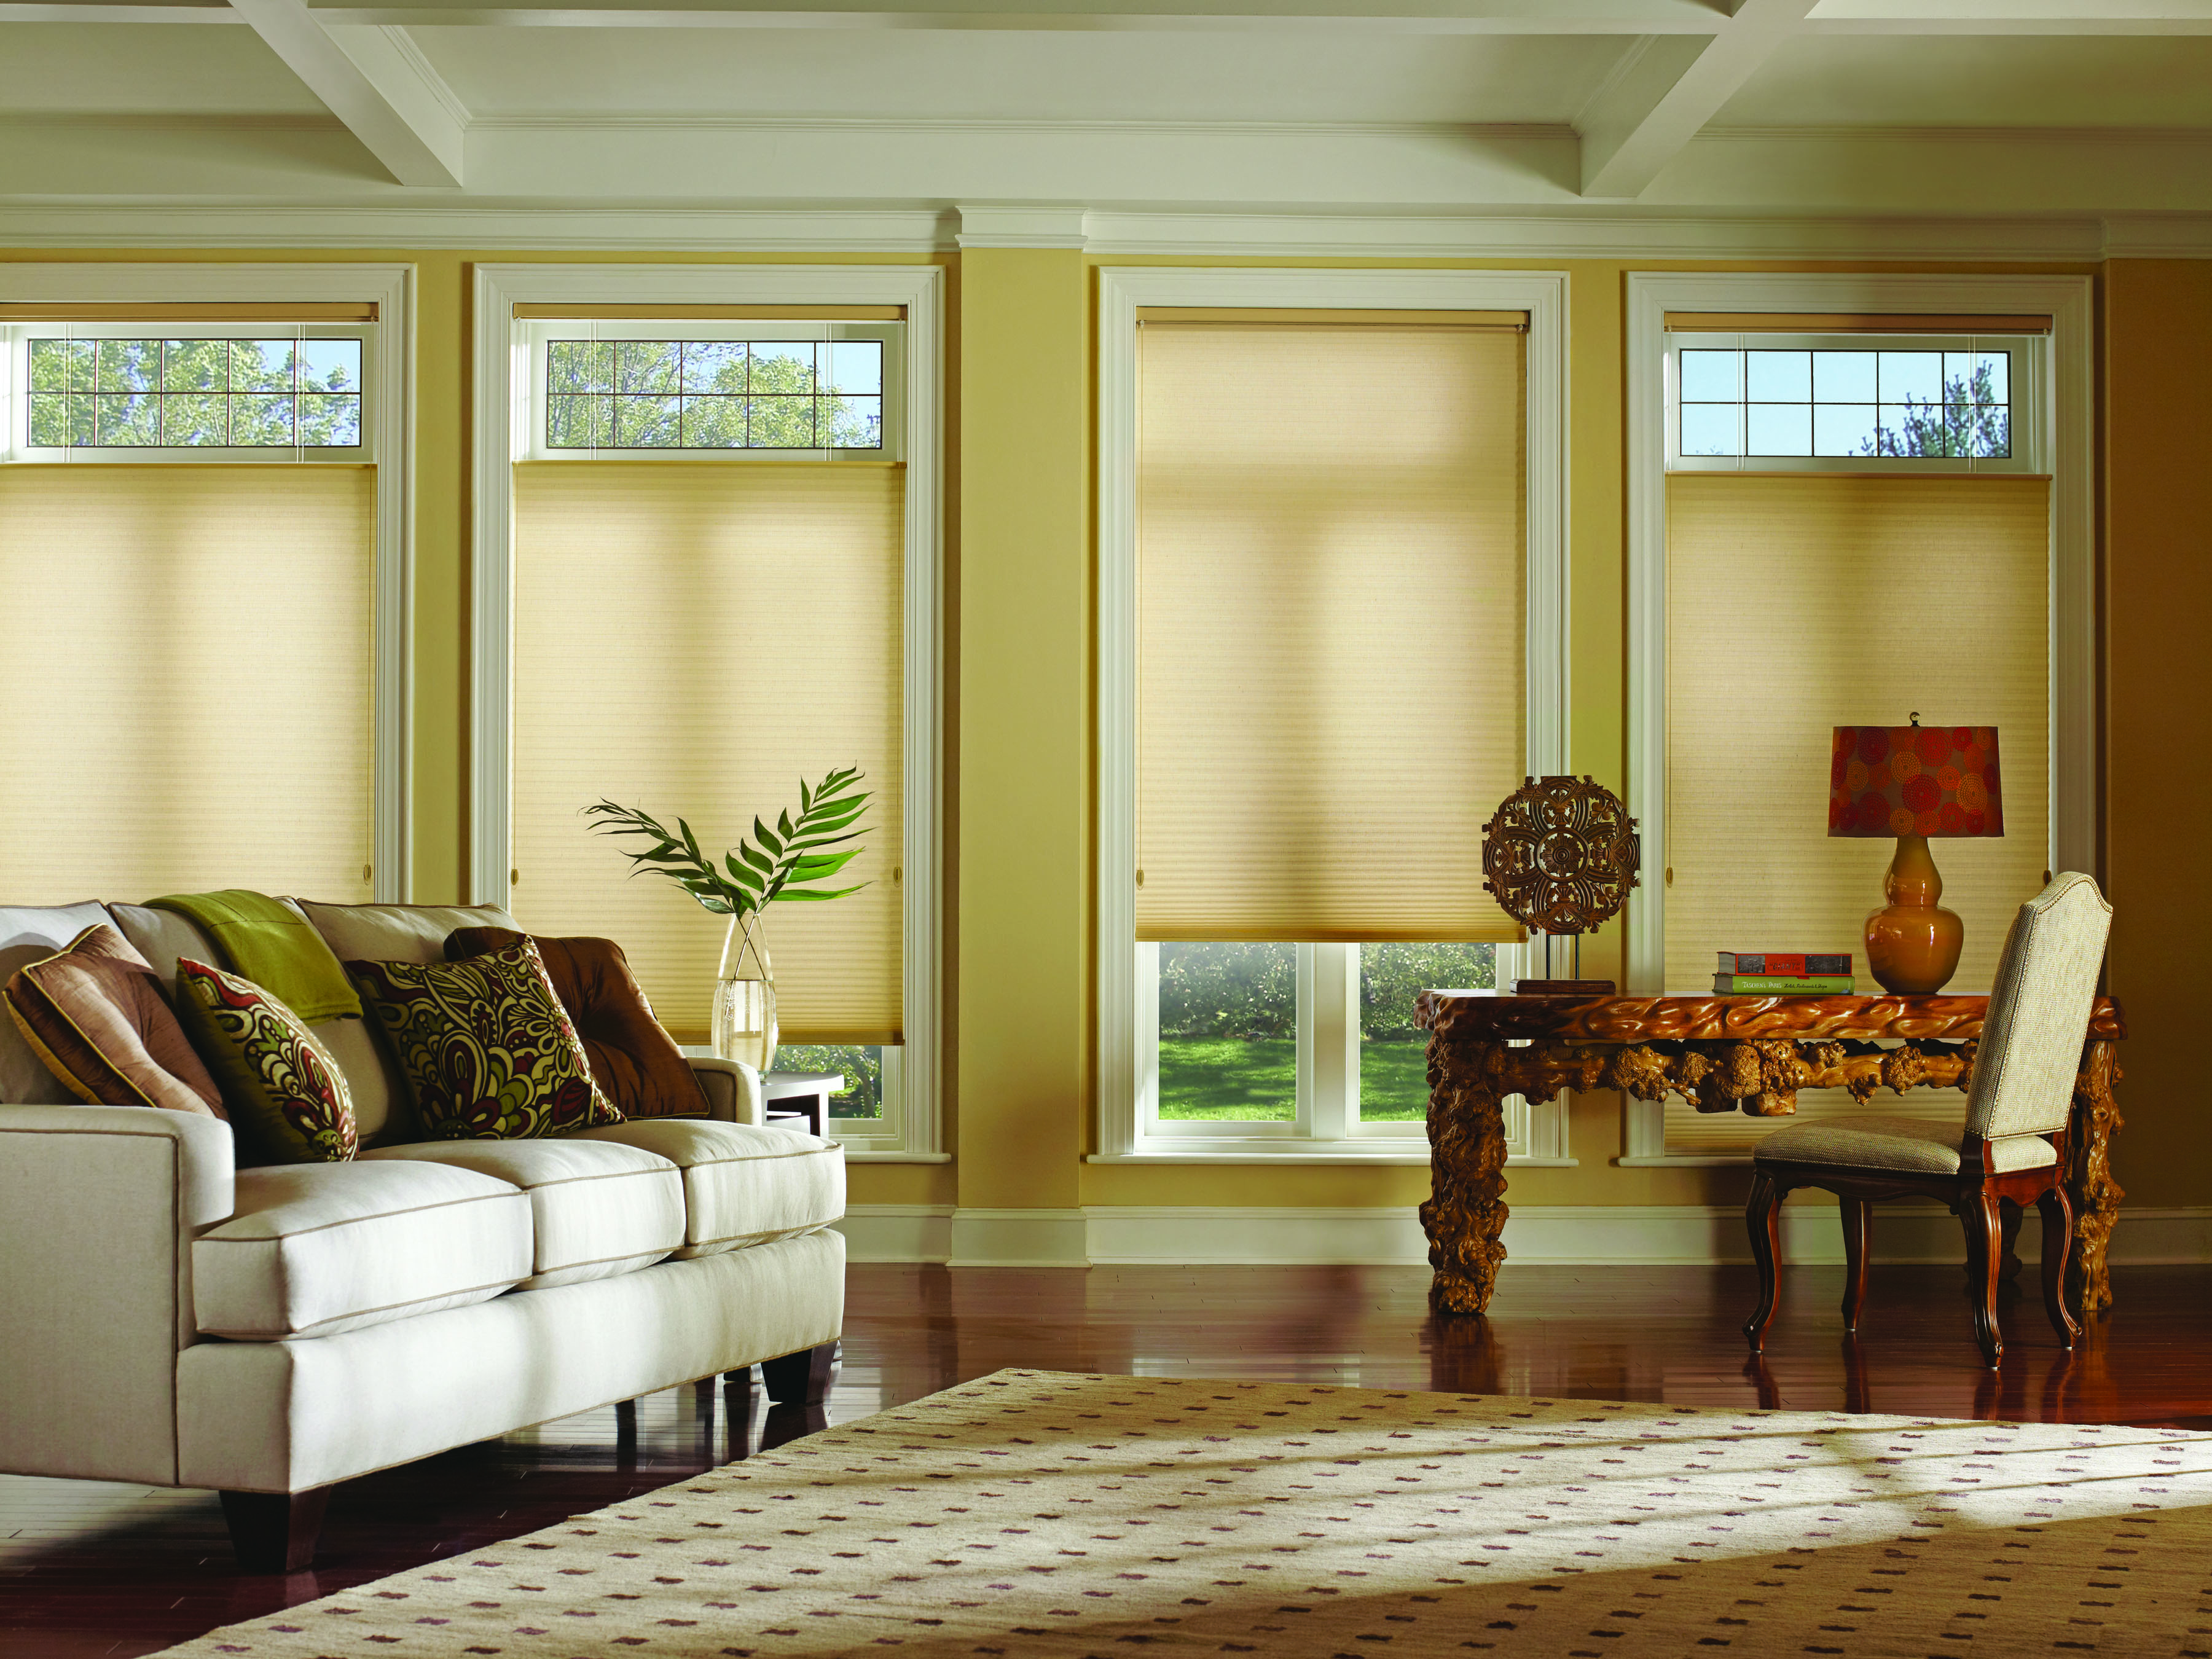 wholesaler fashions window shade products automated of shades roman blinds elite copy manufacturer